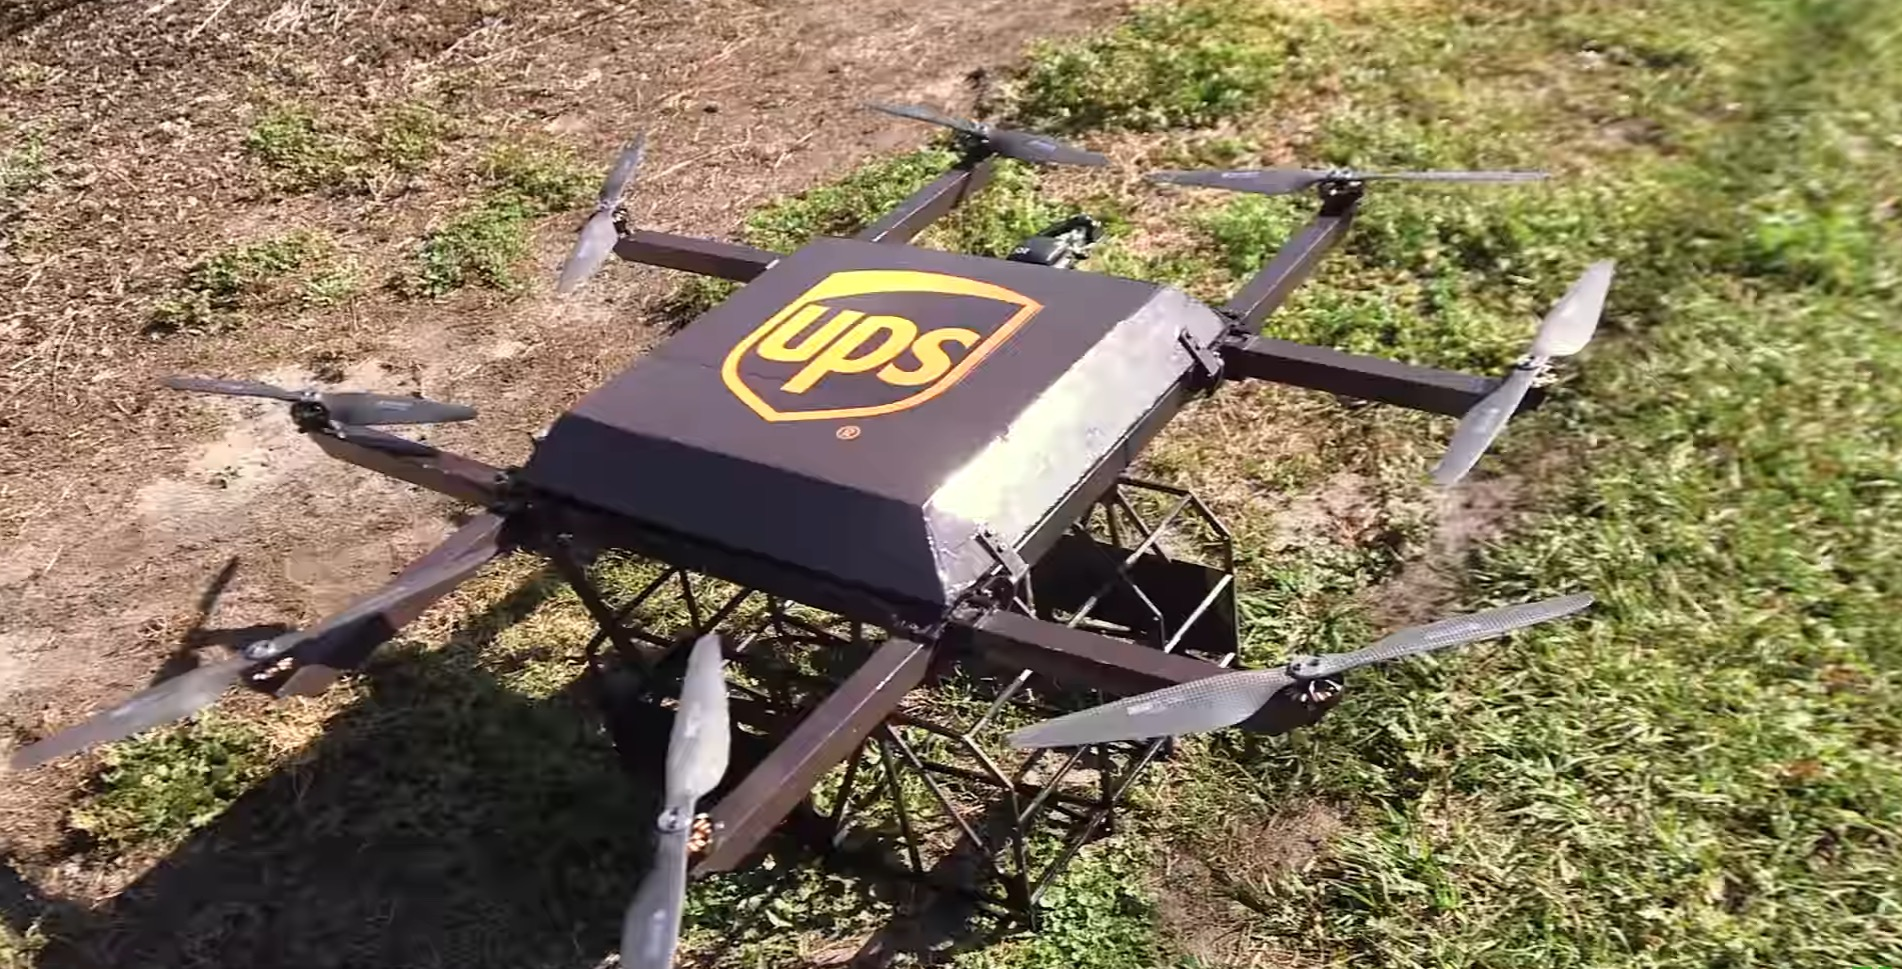 UPS Testing Residential Drone Deliveries Launched From Trucks